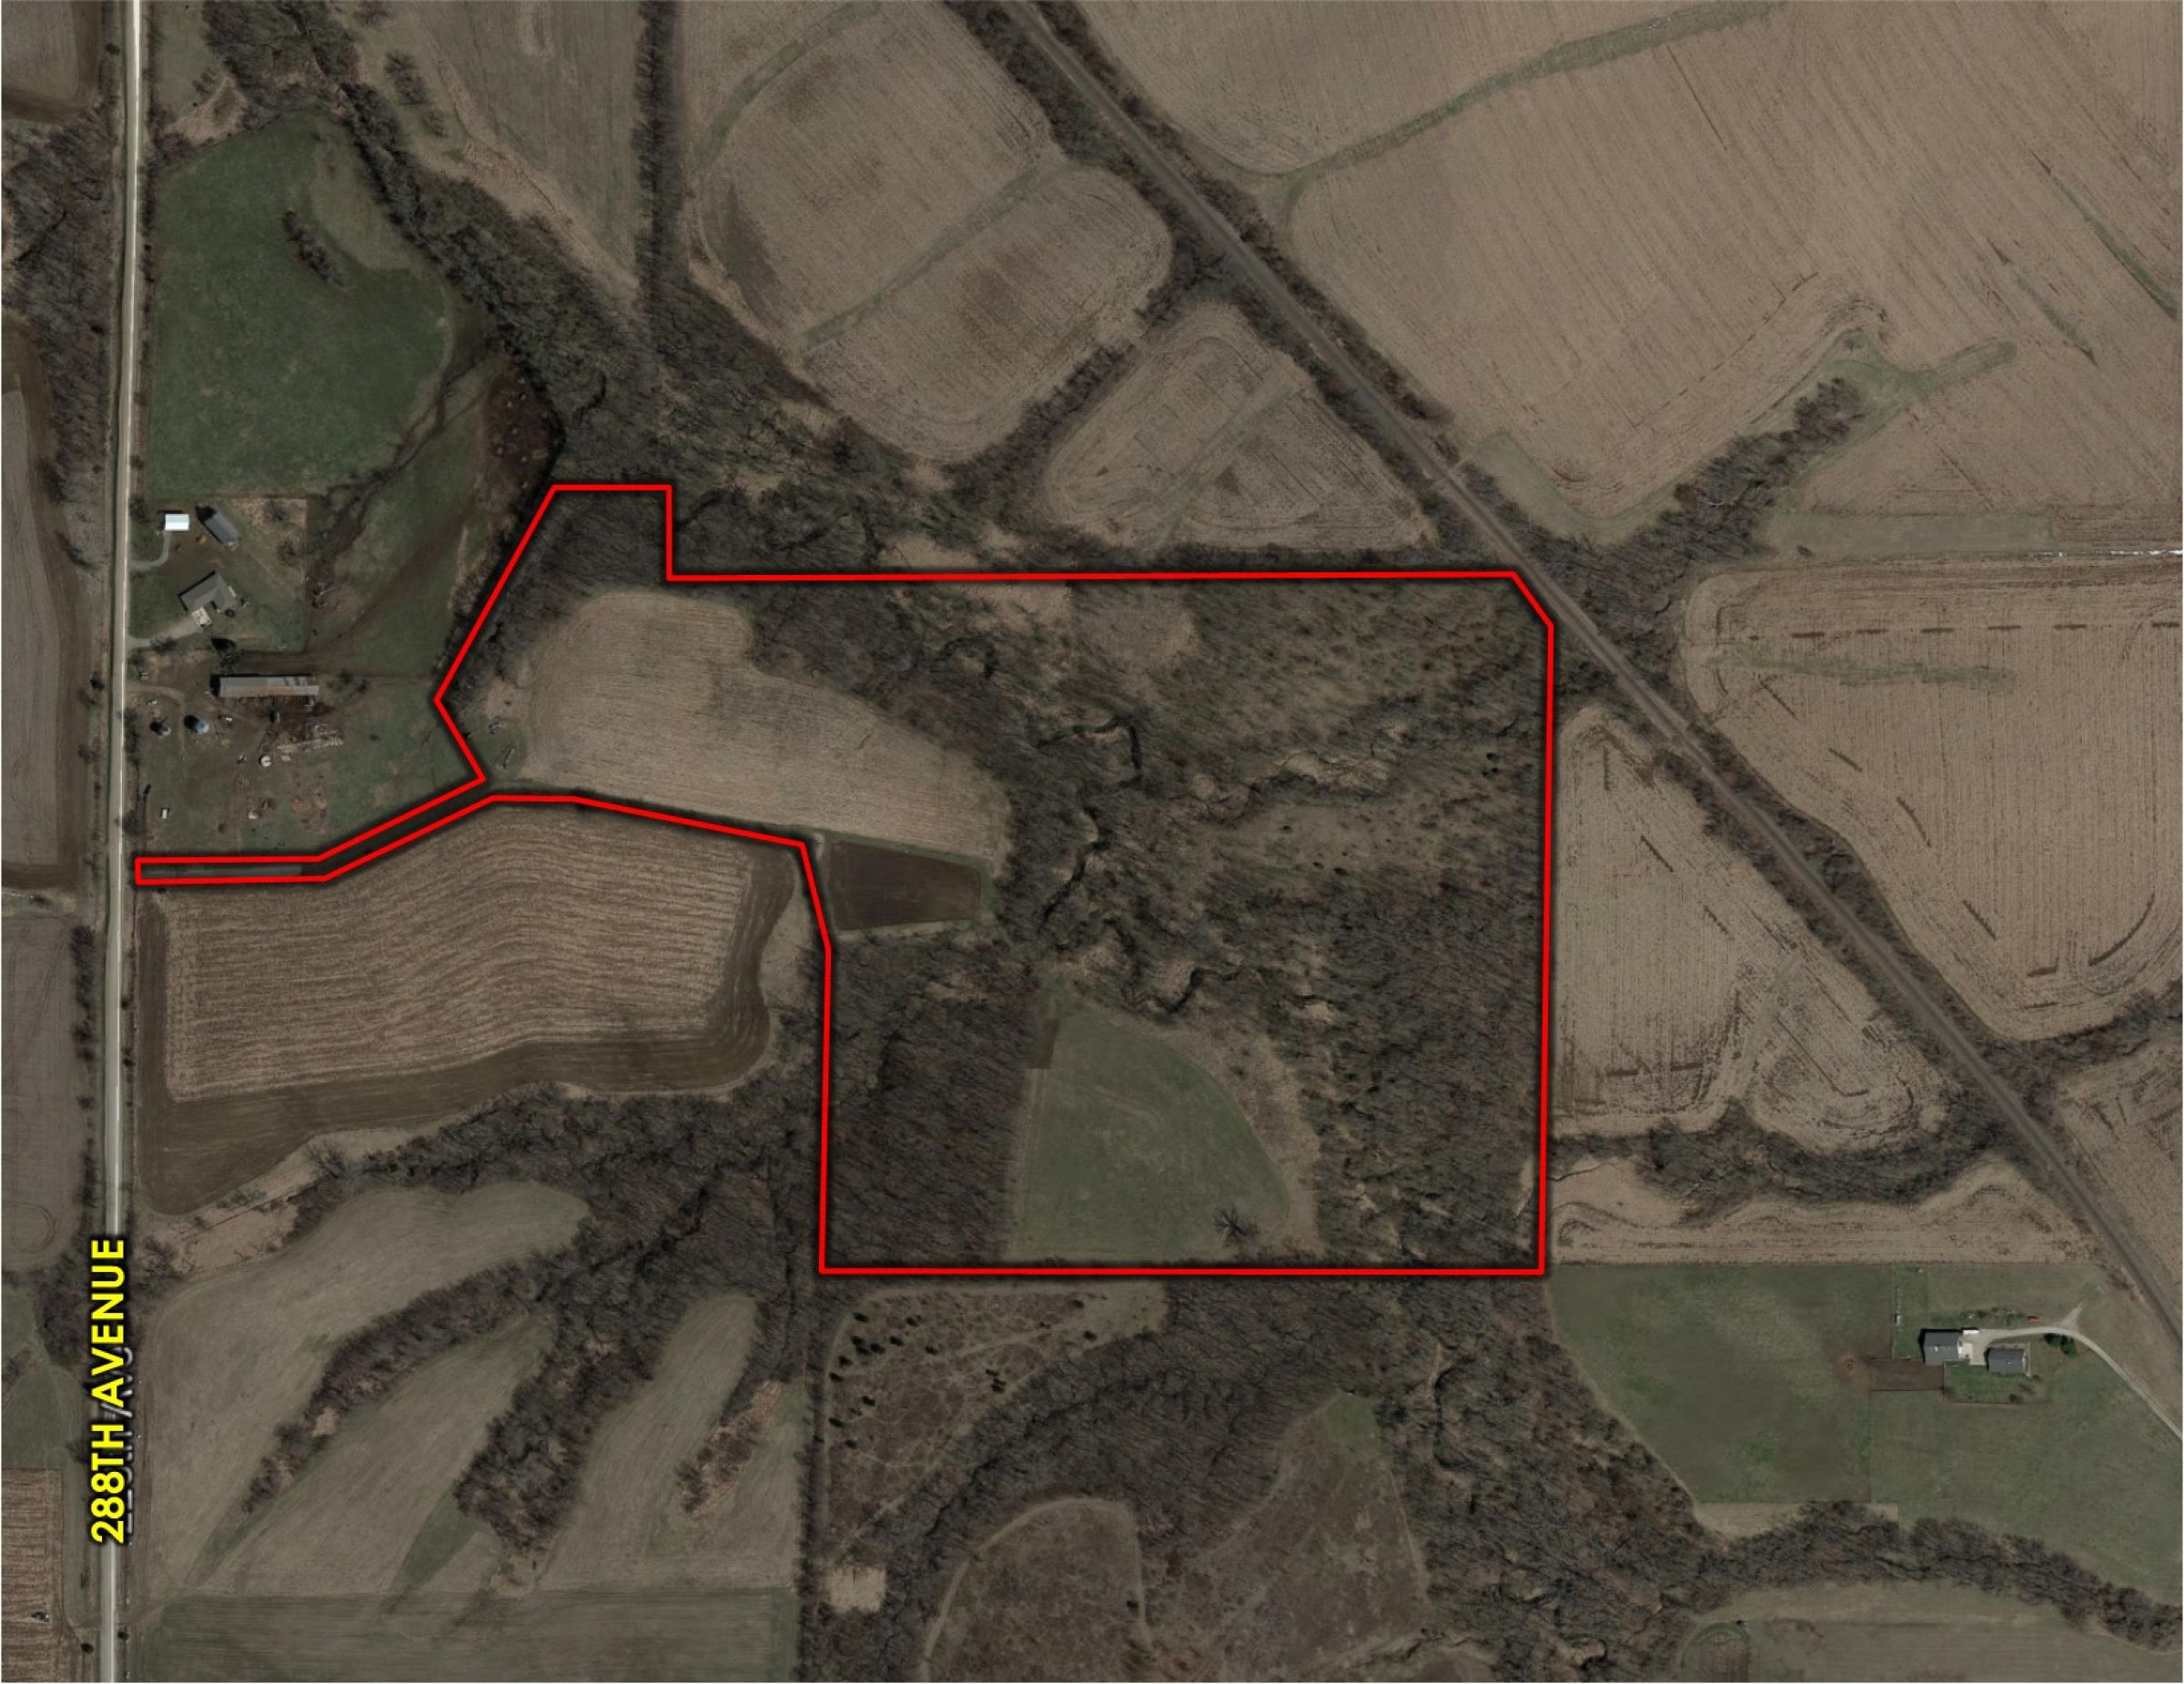 Peoples Company Land For Sale - Warren County Iowa - #14443 - 9109-228th-avenue-ackworth-50001